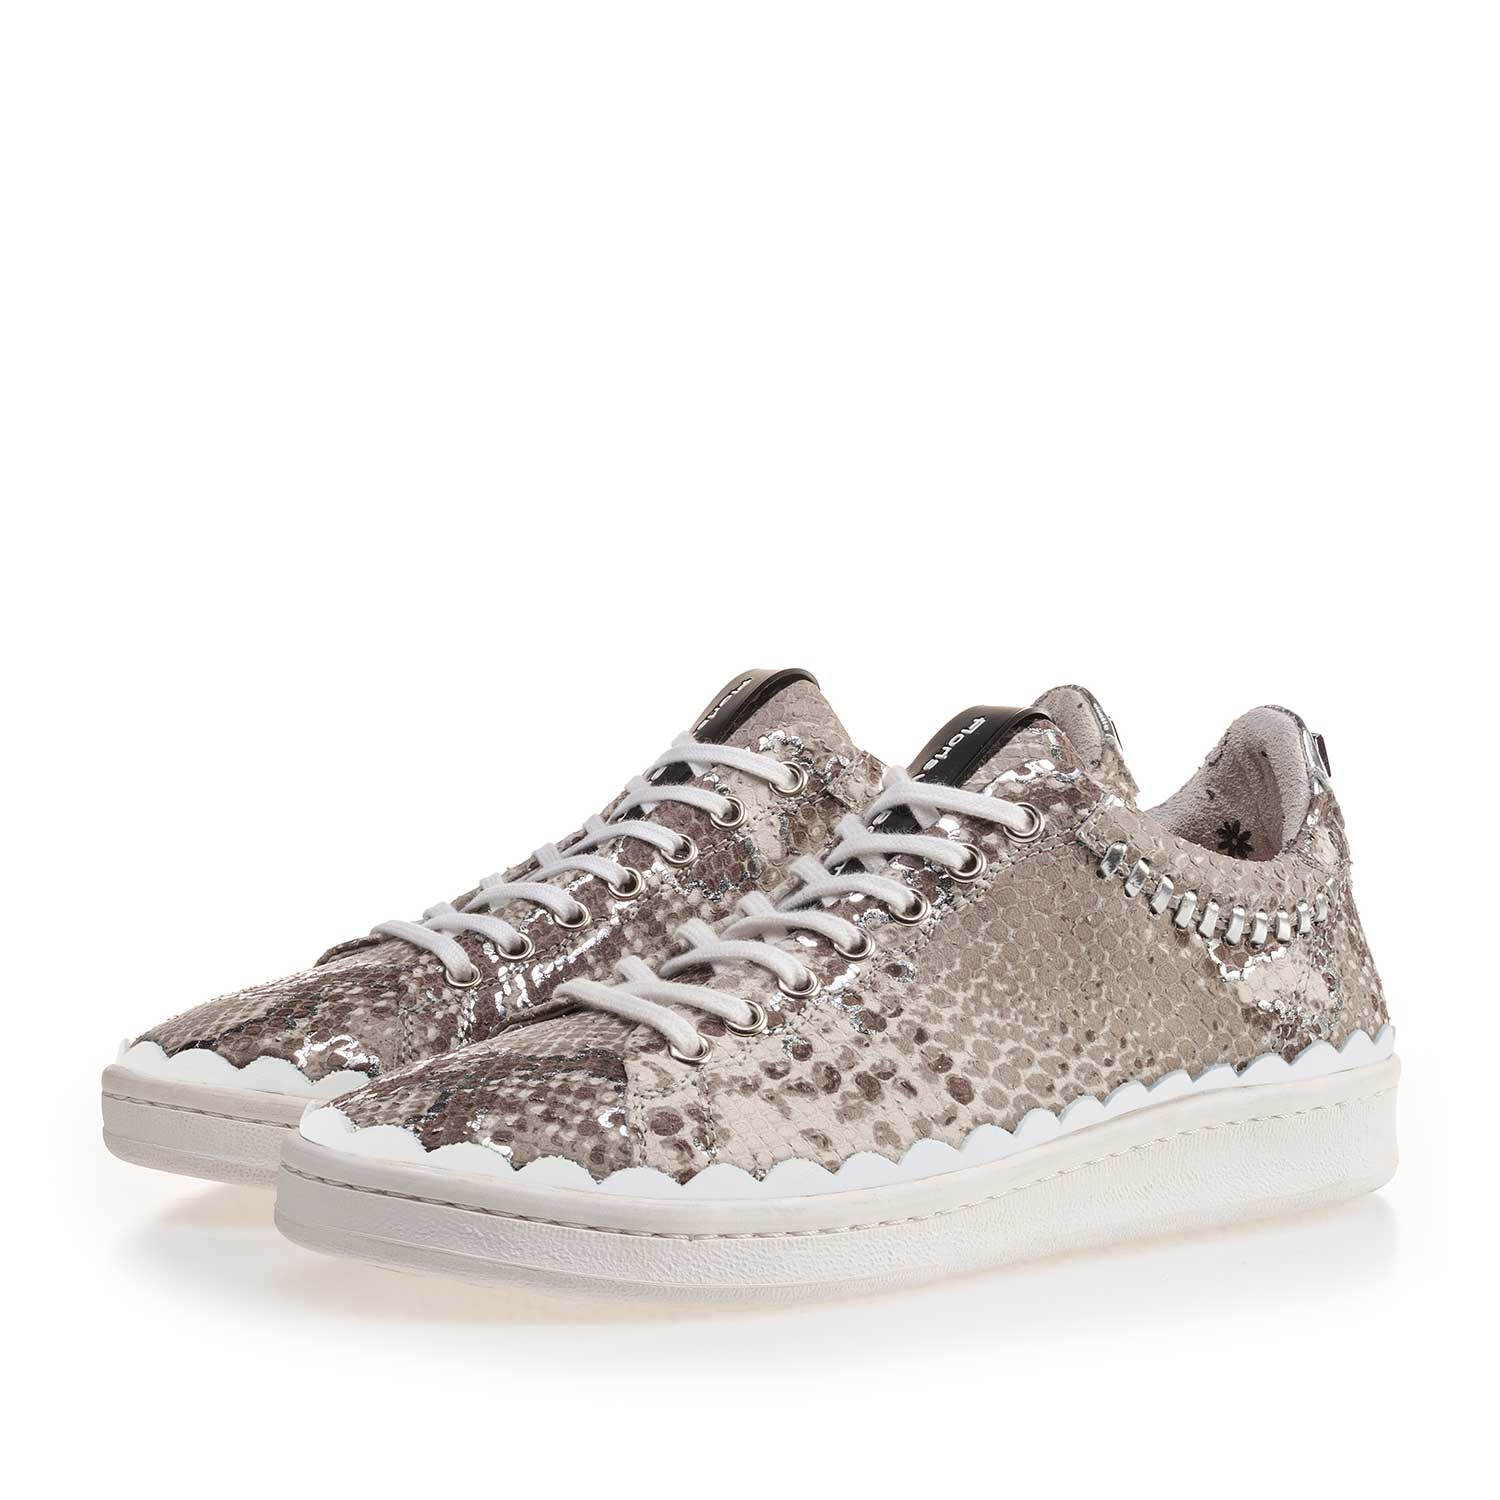 85233/02 - Taupe-coloured snake print leather sneaker